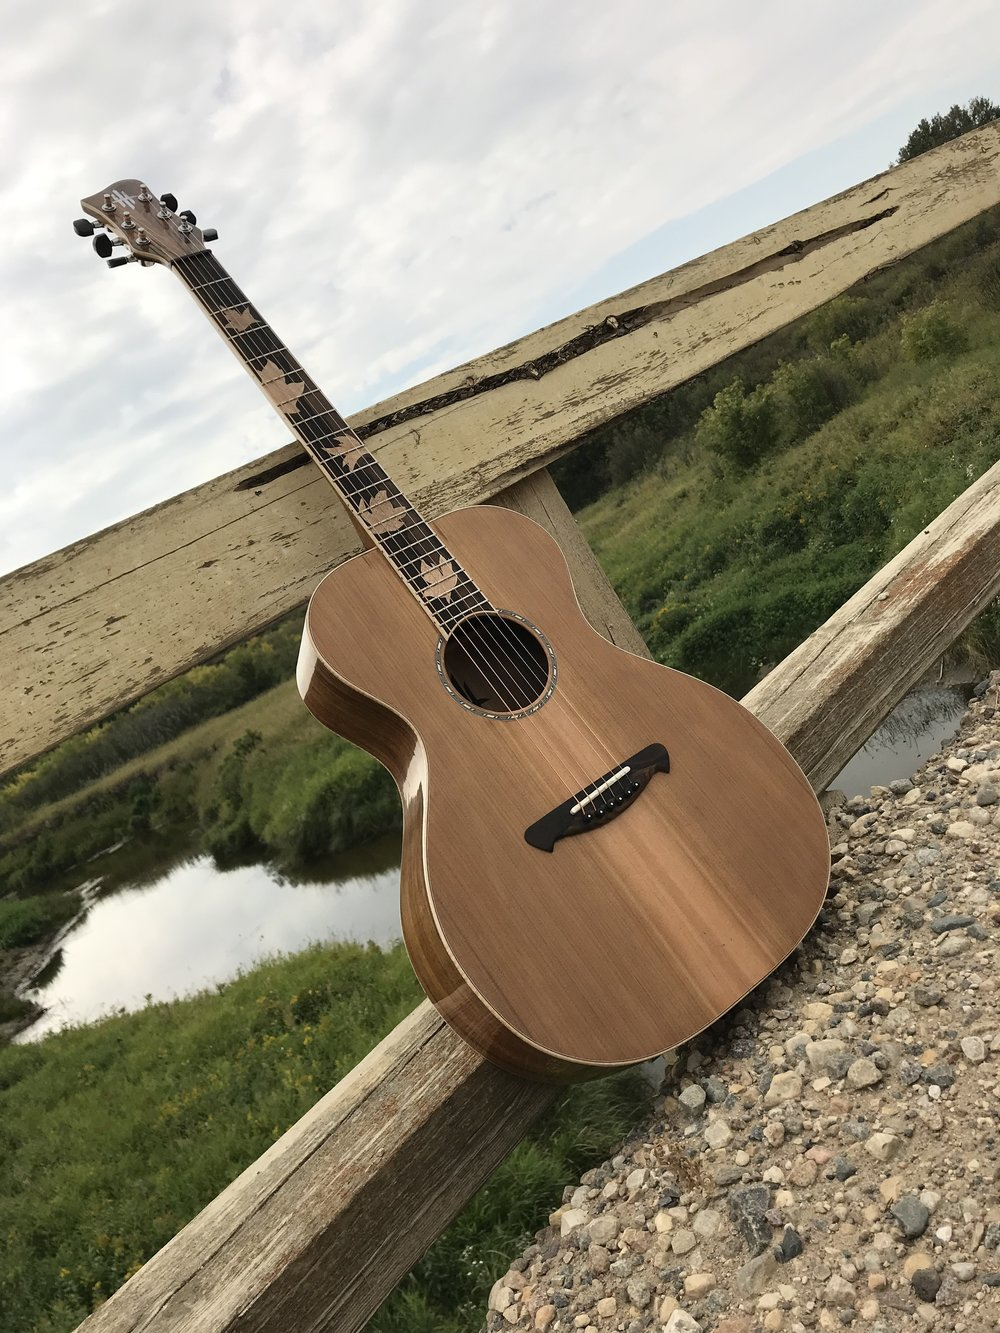 "-O Scale Acoustic Guitar  -Tazmanian Blackwood Back, Sides and Neck  -Western Red Cedar Top  -Zircoti Bridge and Fretboard with Flamed Maple Inlays  -English Walnut Head Veneer with Pearl Inlay  -Flamed Maple Bindings  -25.5"" Scale  -Tusq Nut and Saddle"